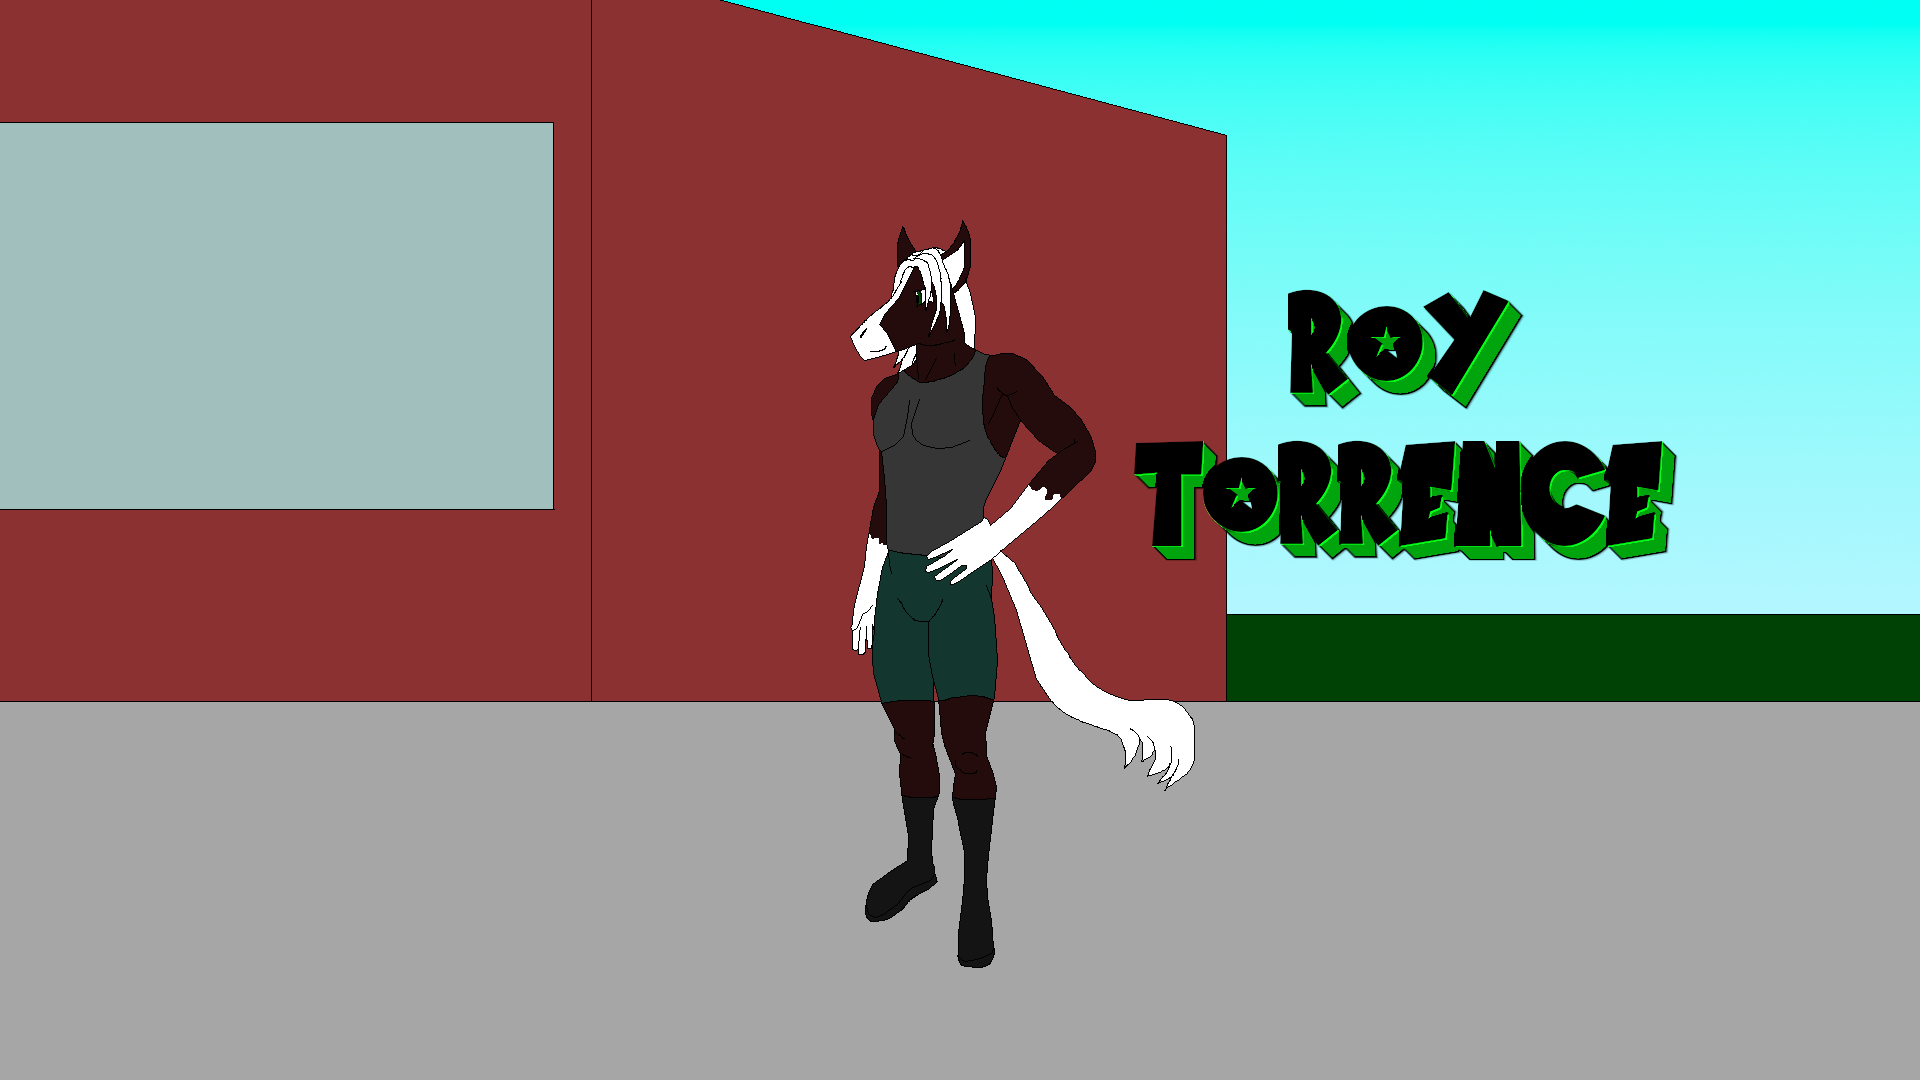 OC - Roy Torrence